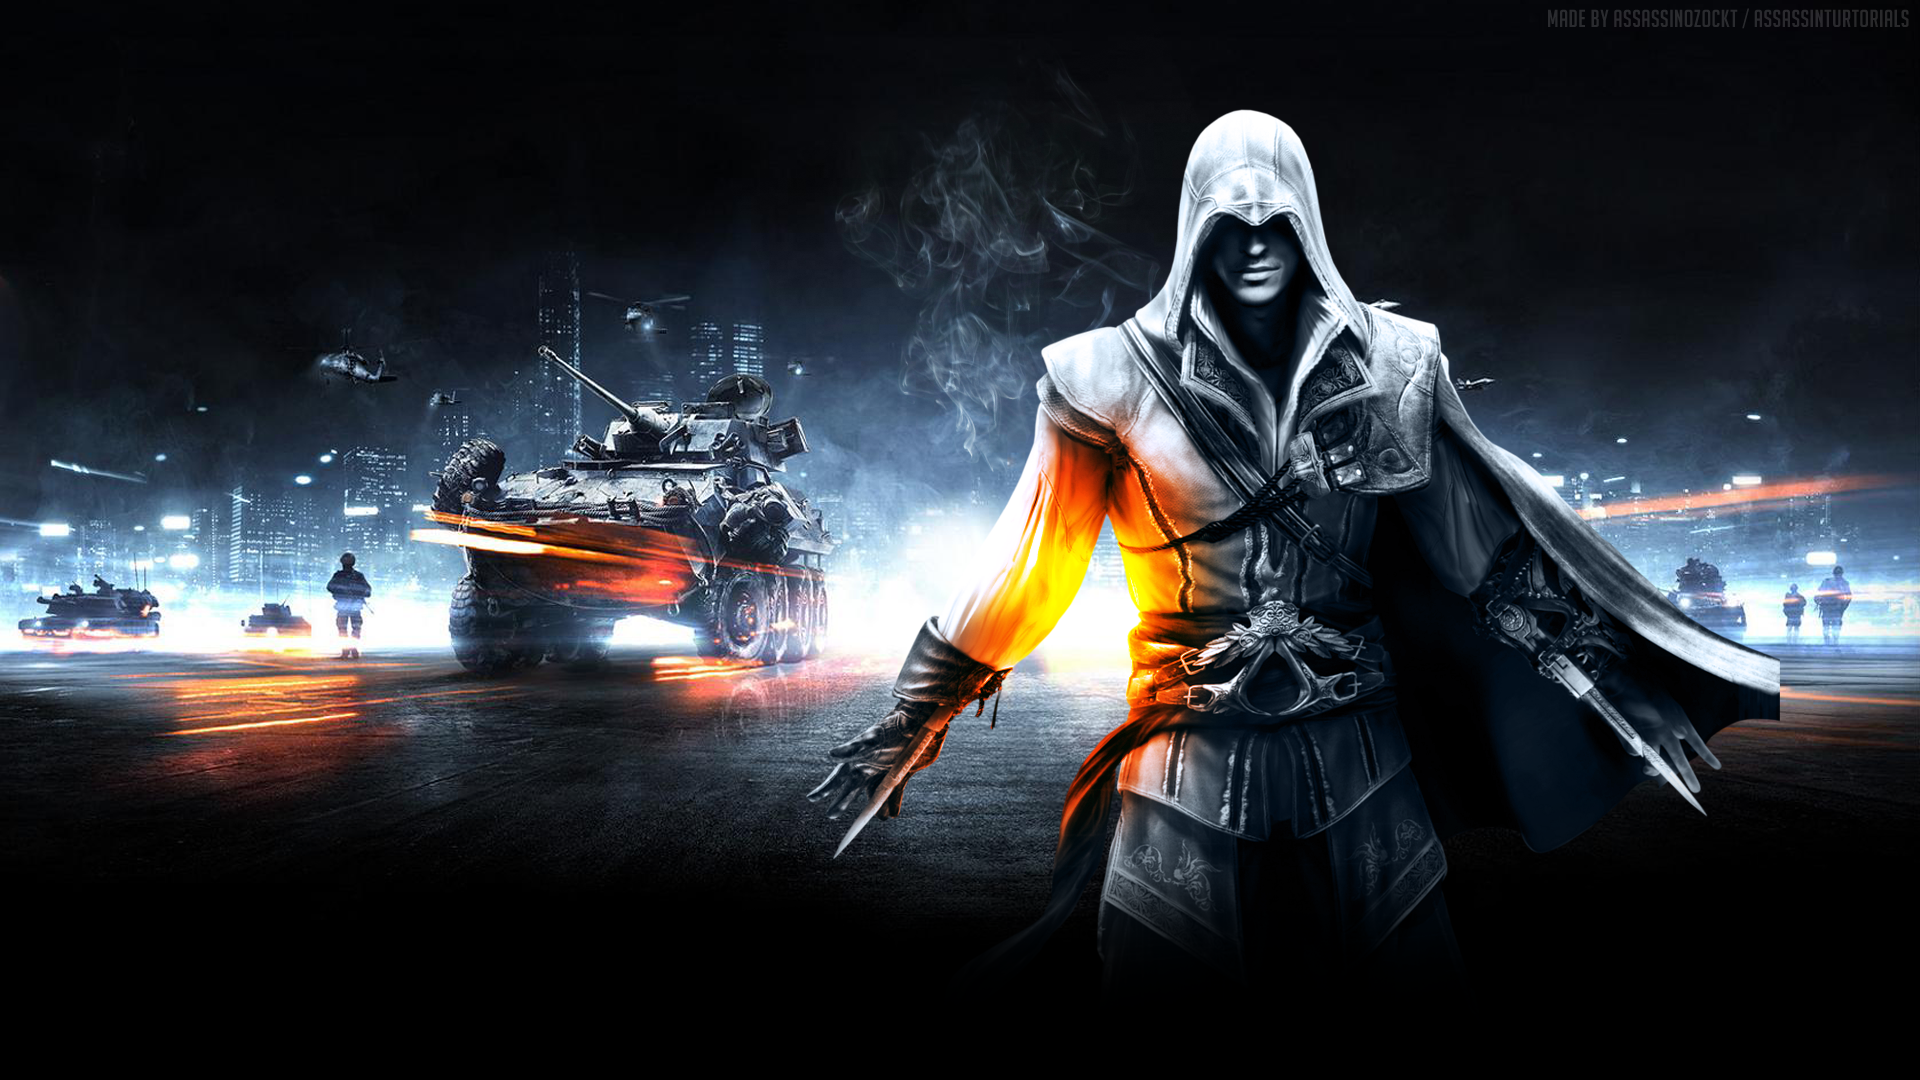 Gaming Backgrounds Pictures HD